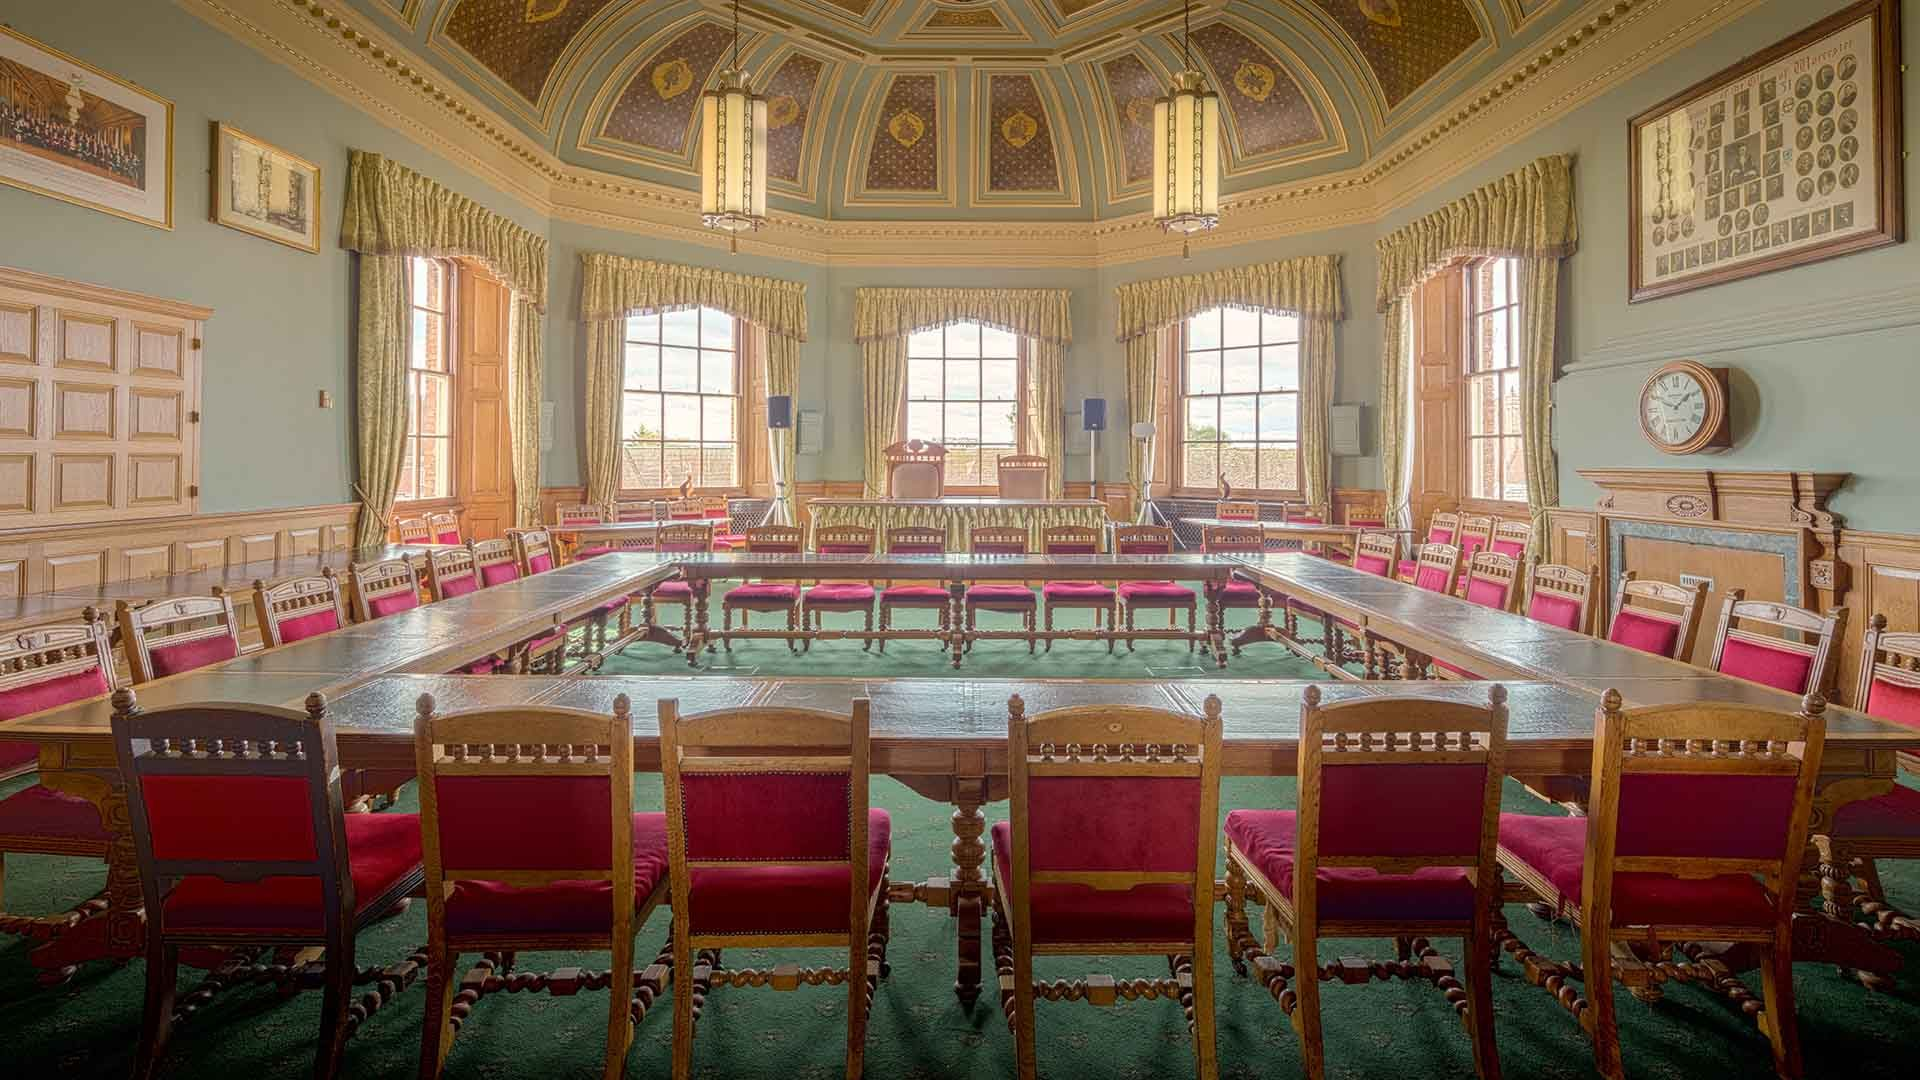 9 Things You Should Know About the Council of Trent